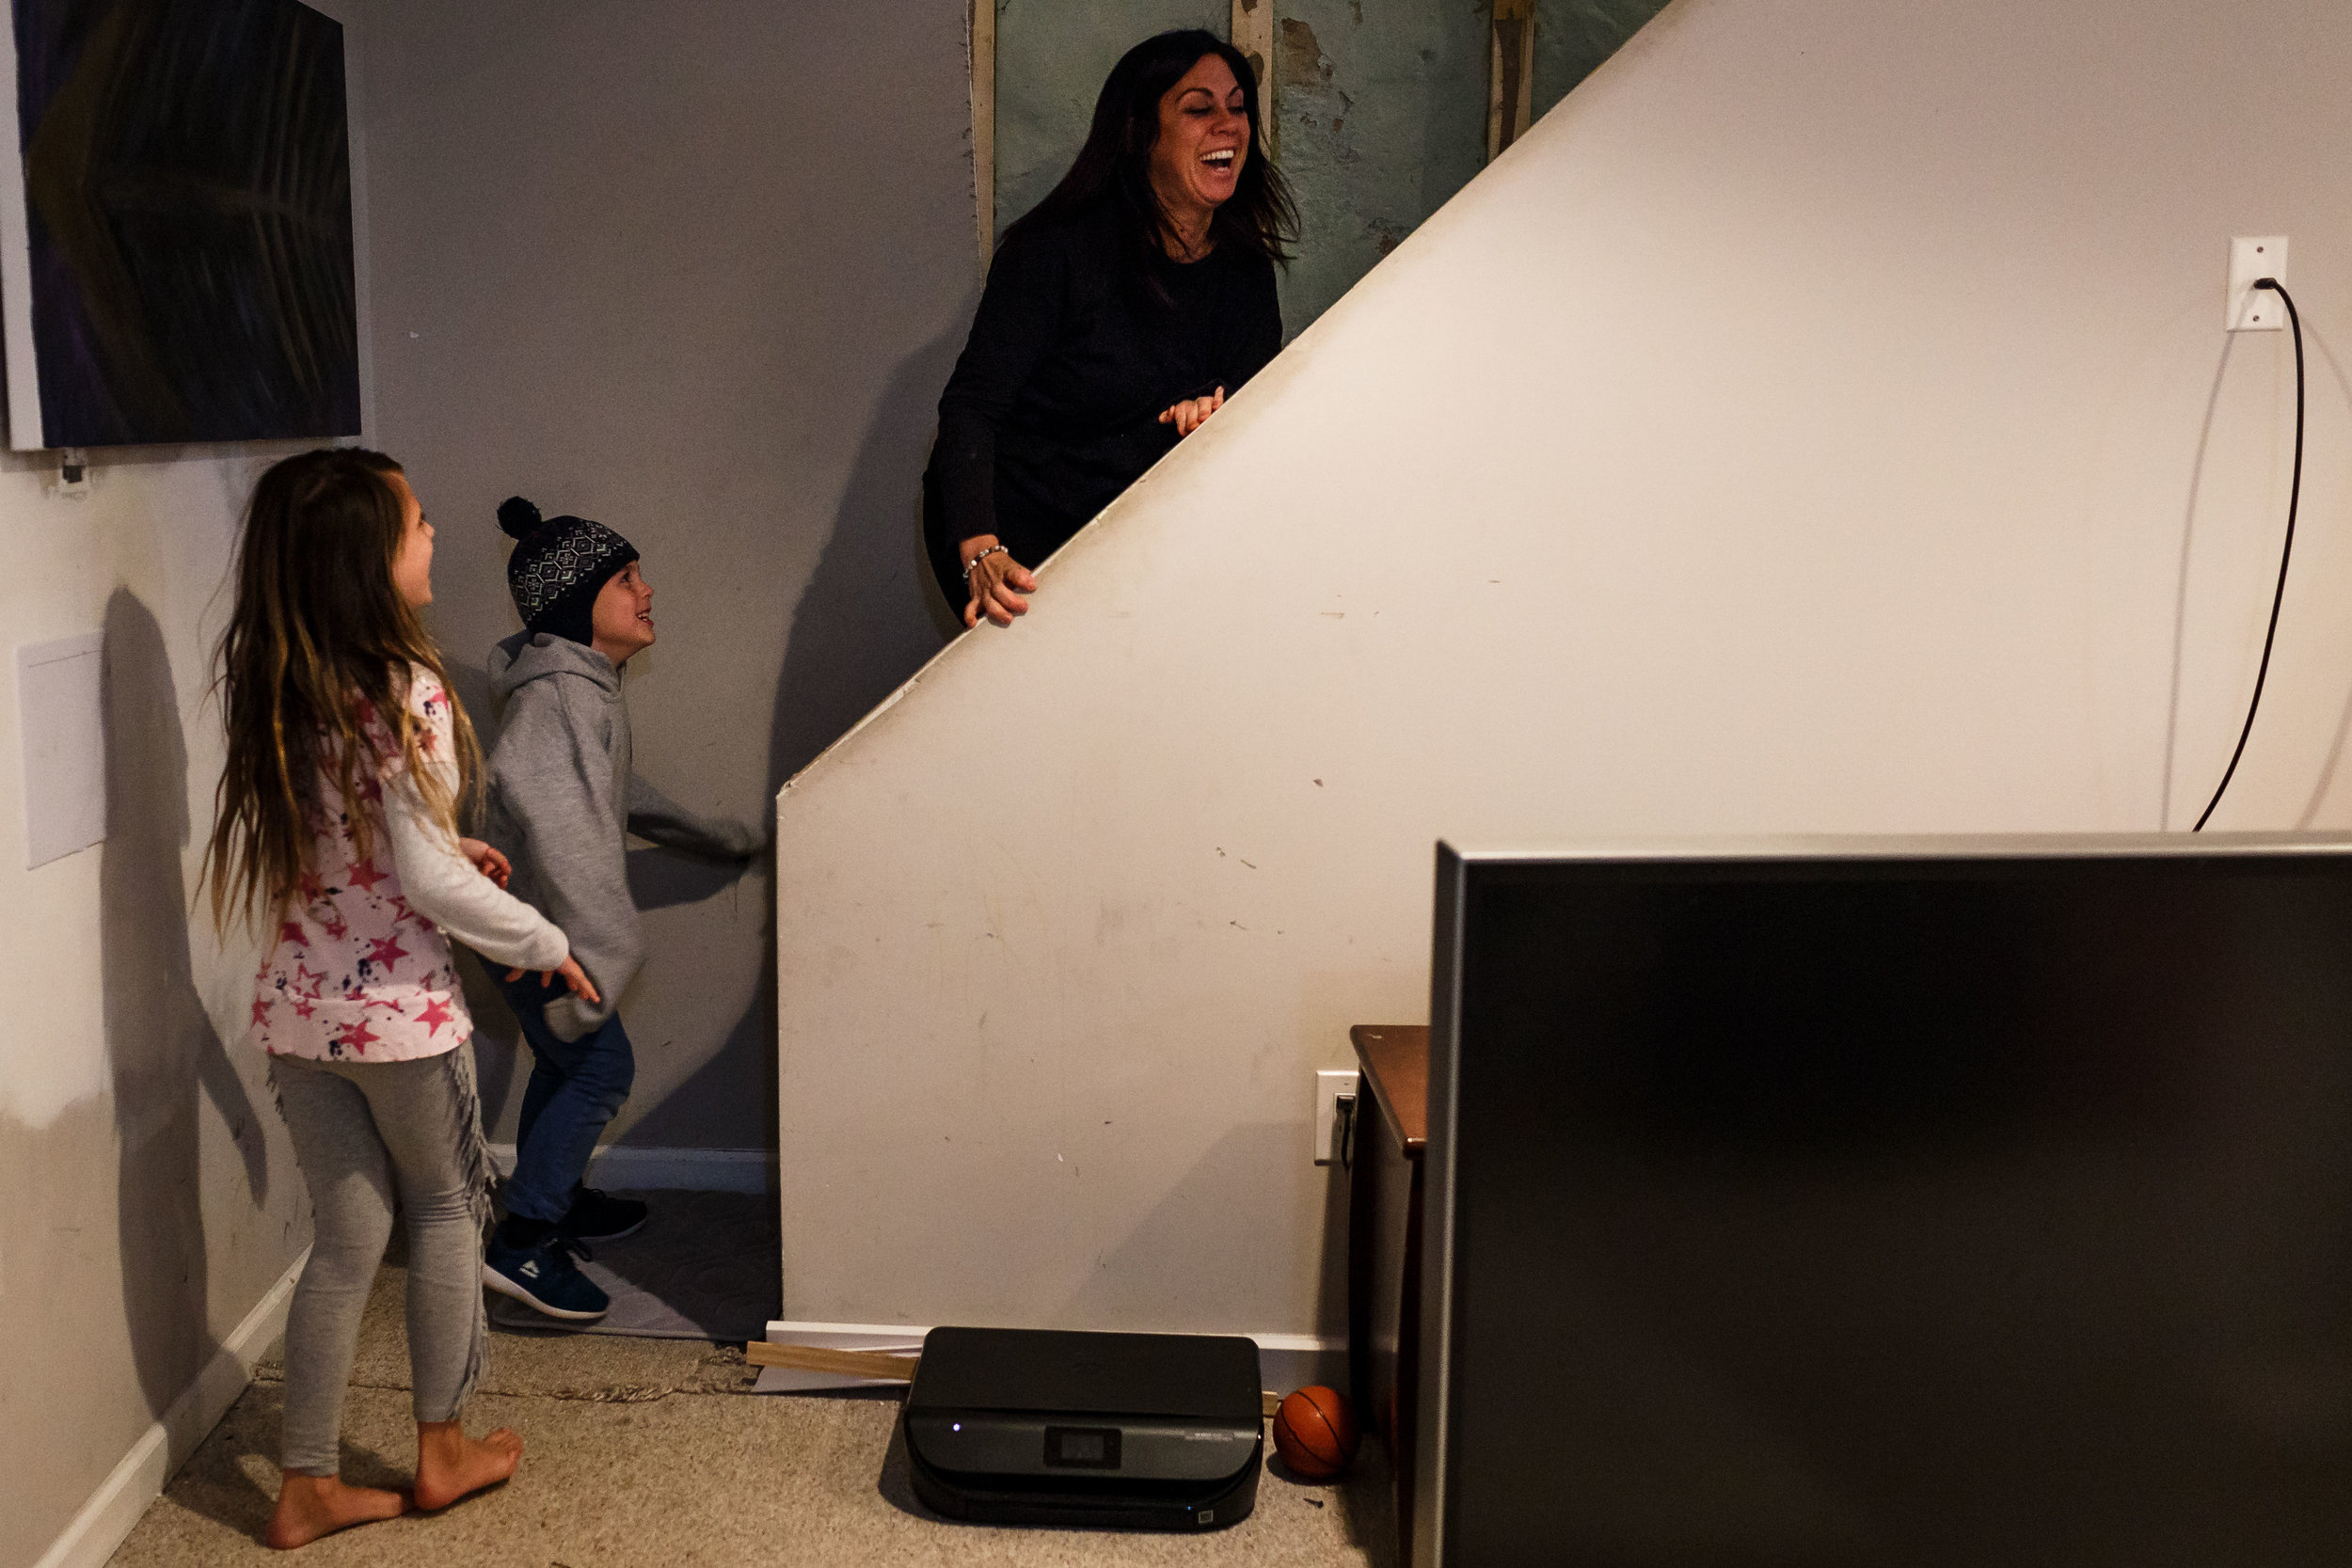 Mom laughing at kids on the staircase